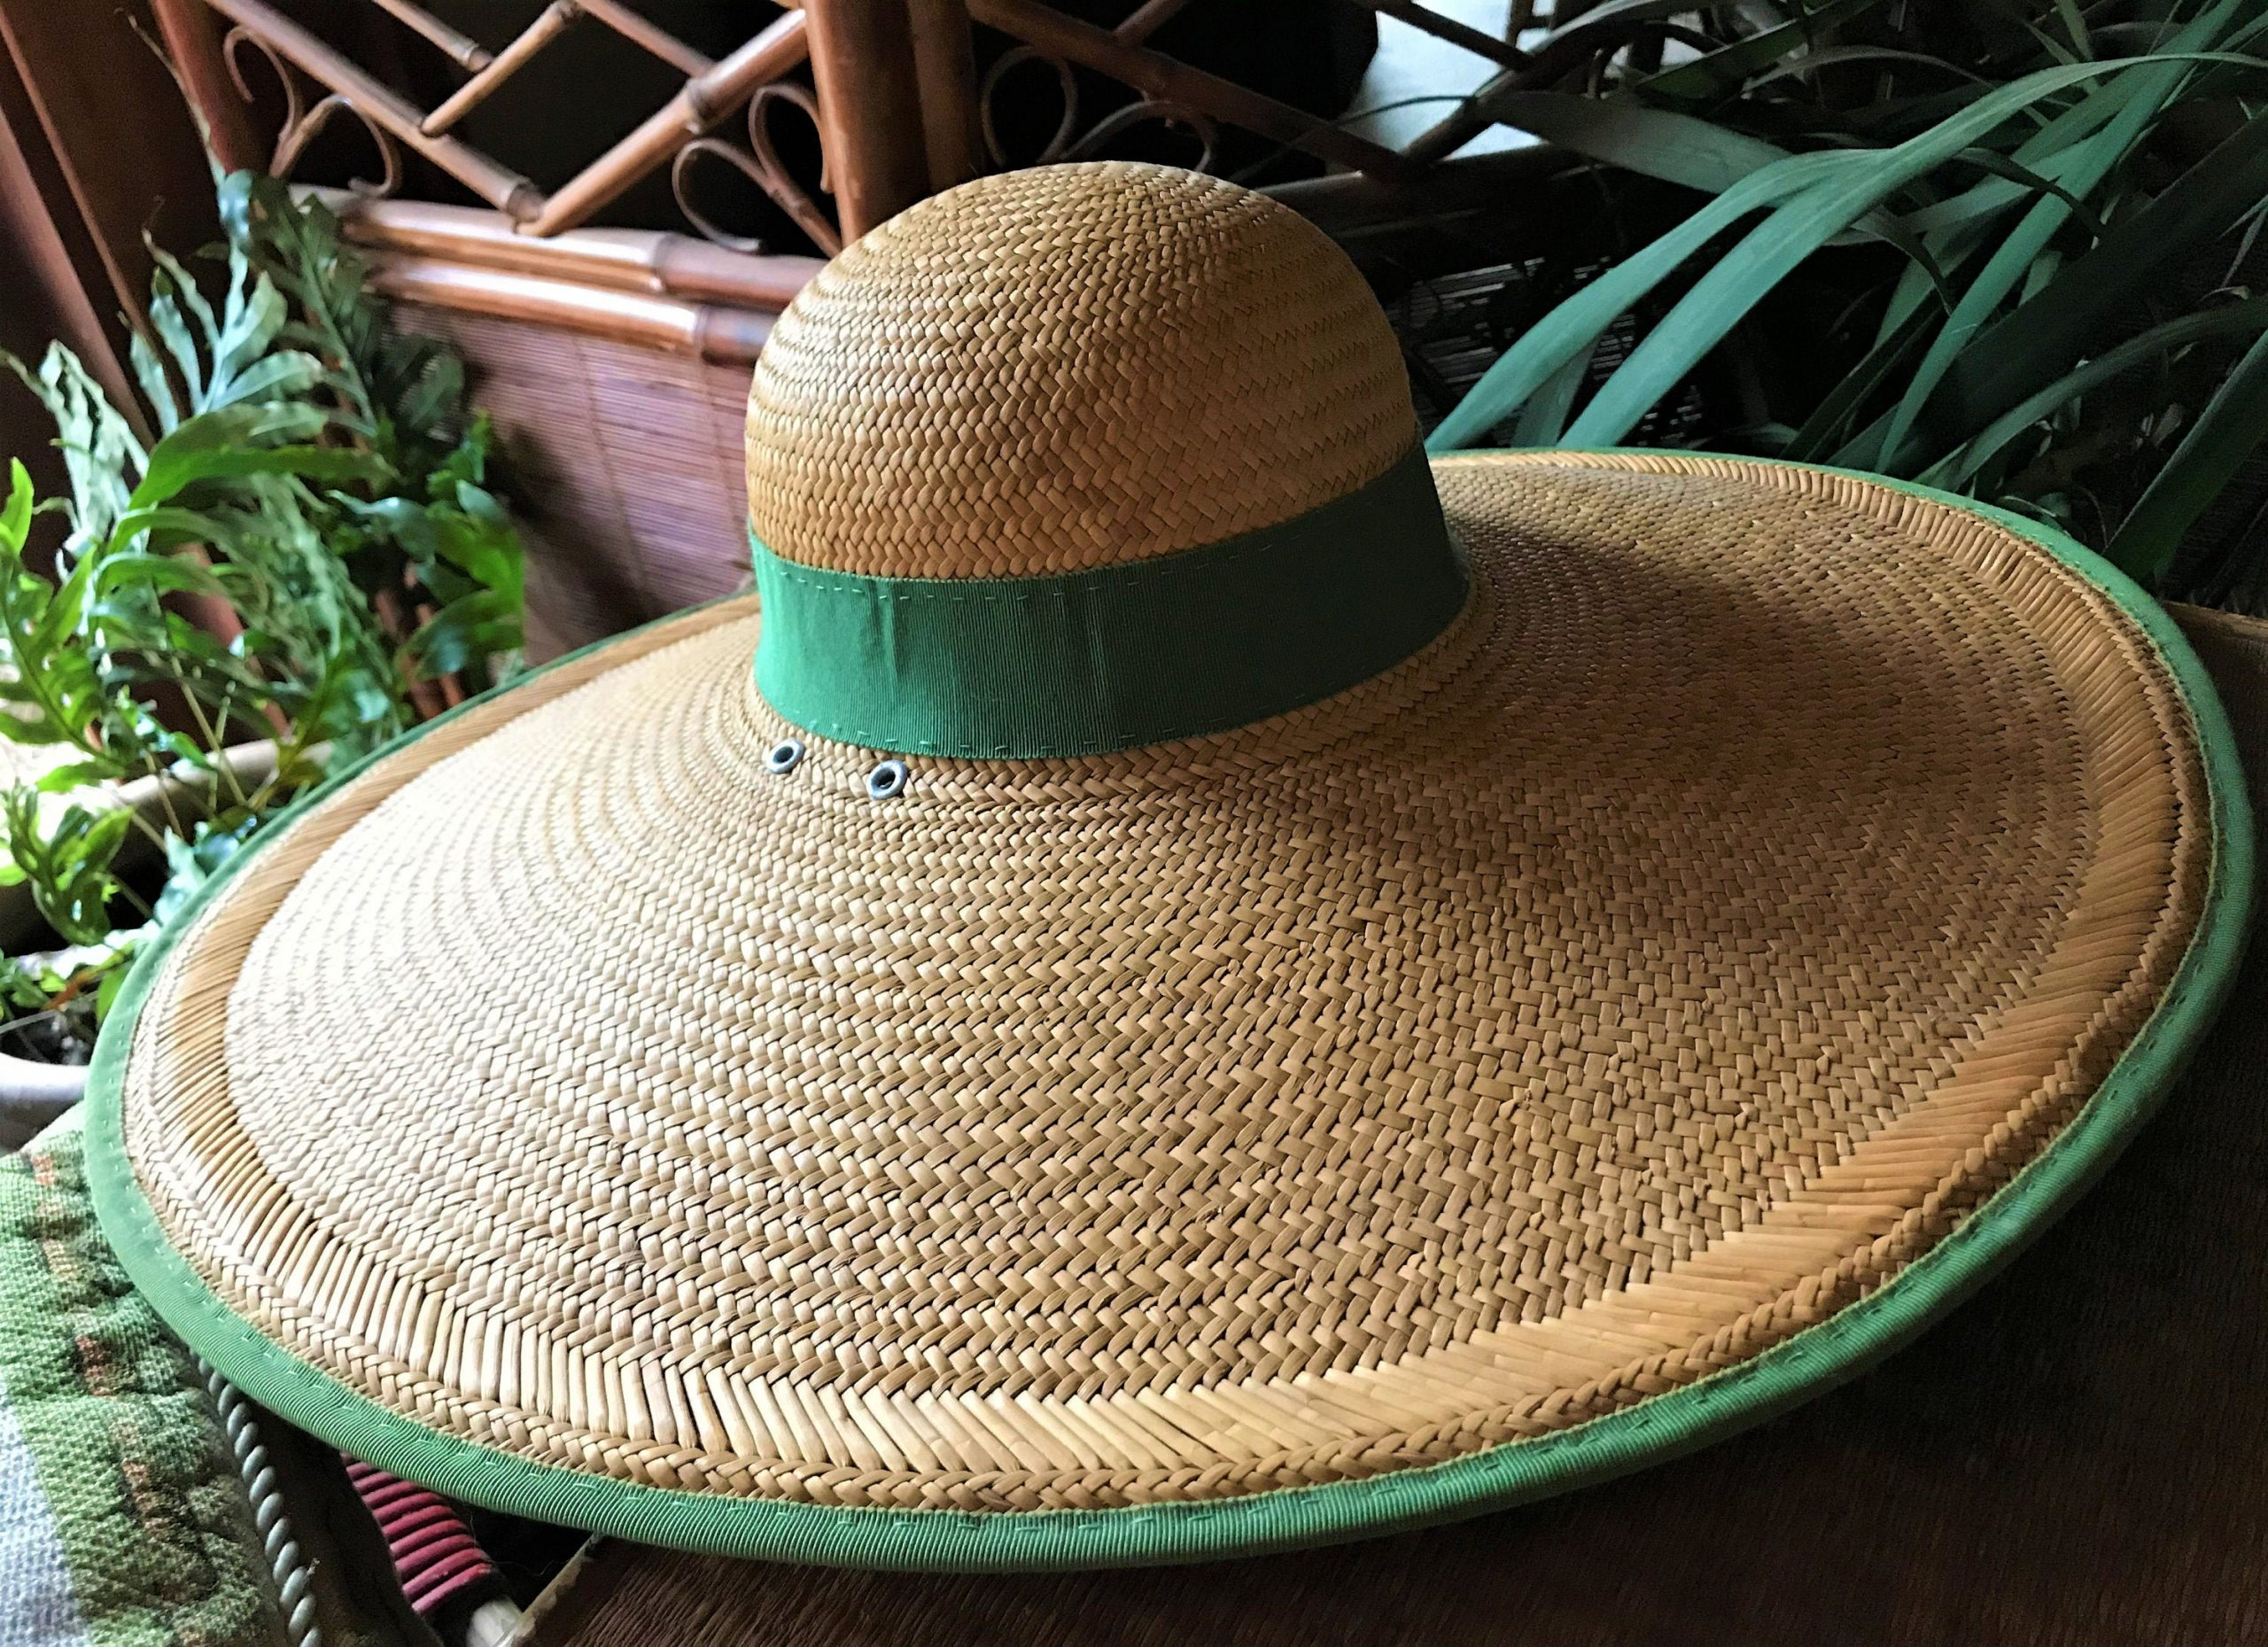 Vintage 1950's Straw Hat Wide Brim Rigid Woven Construction Small/6-7 New Deadstock